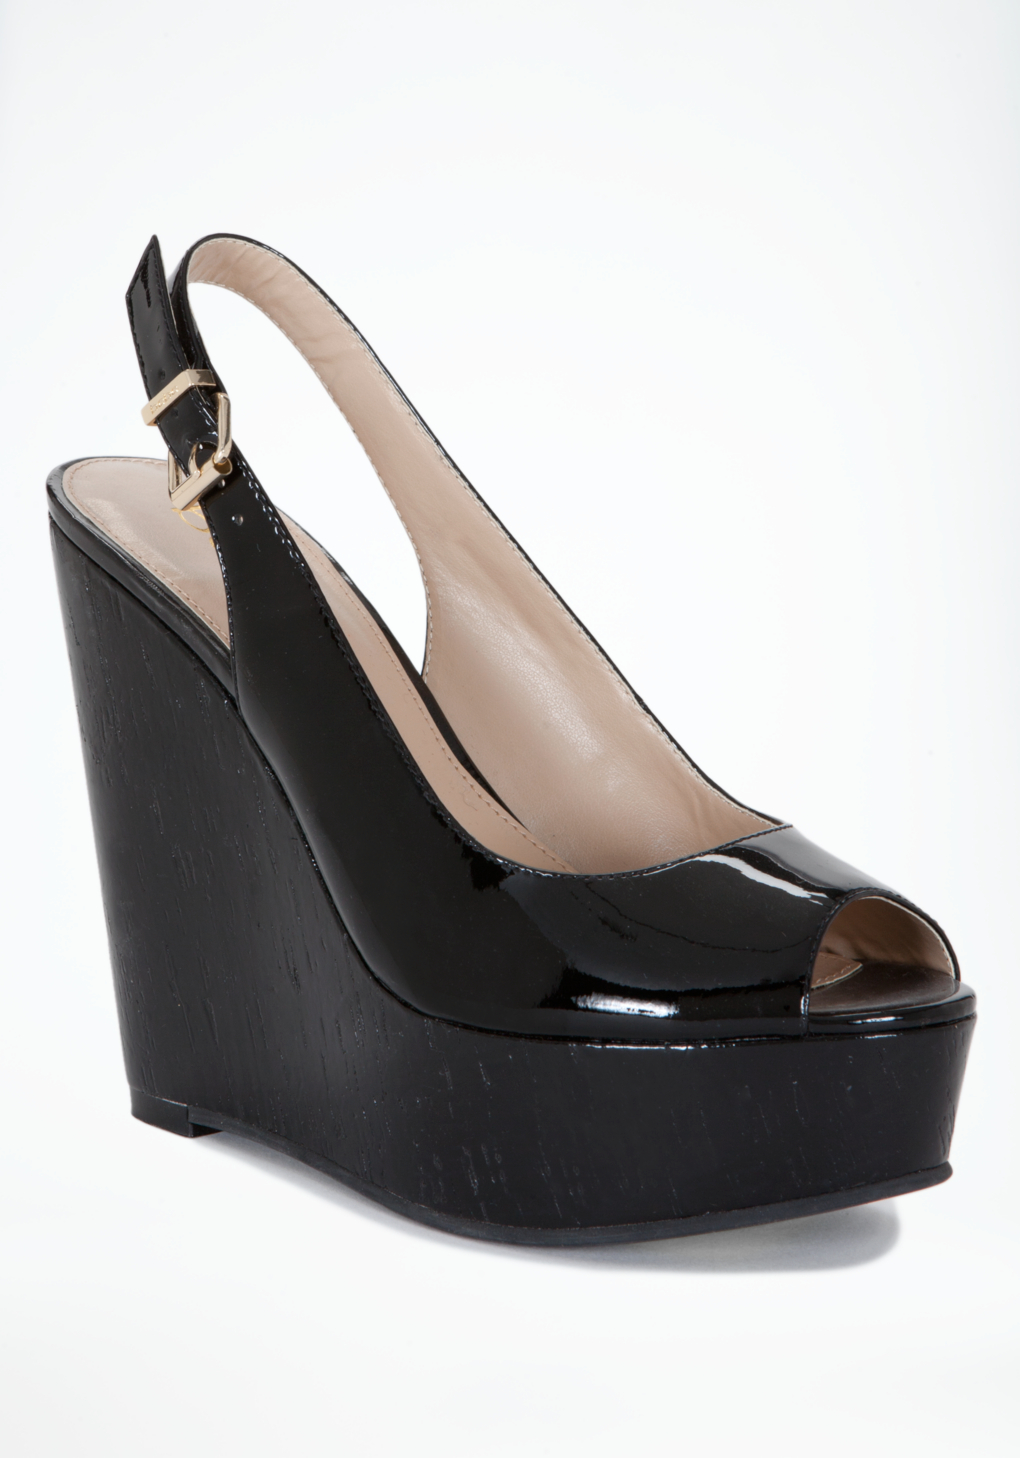 Black patent leather 'Trino' mid wedge heel mules Save. £ KG Kurt Geiger Black 'Notty' high heel wedge sandals Save. Was £ Now £ Padders Black leather 'skye 2' mid heel wide fit shoes Save. £ Wallis Black elastic strap raffia wedge sandals Save.